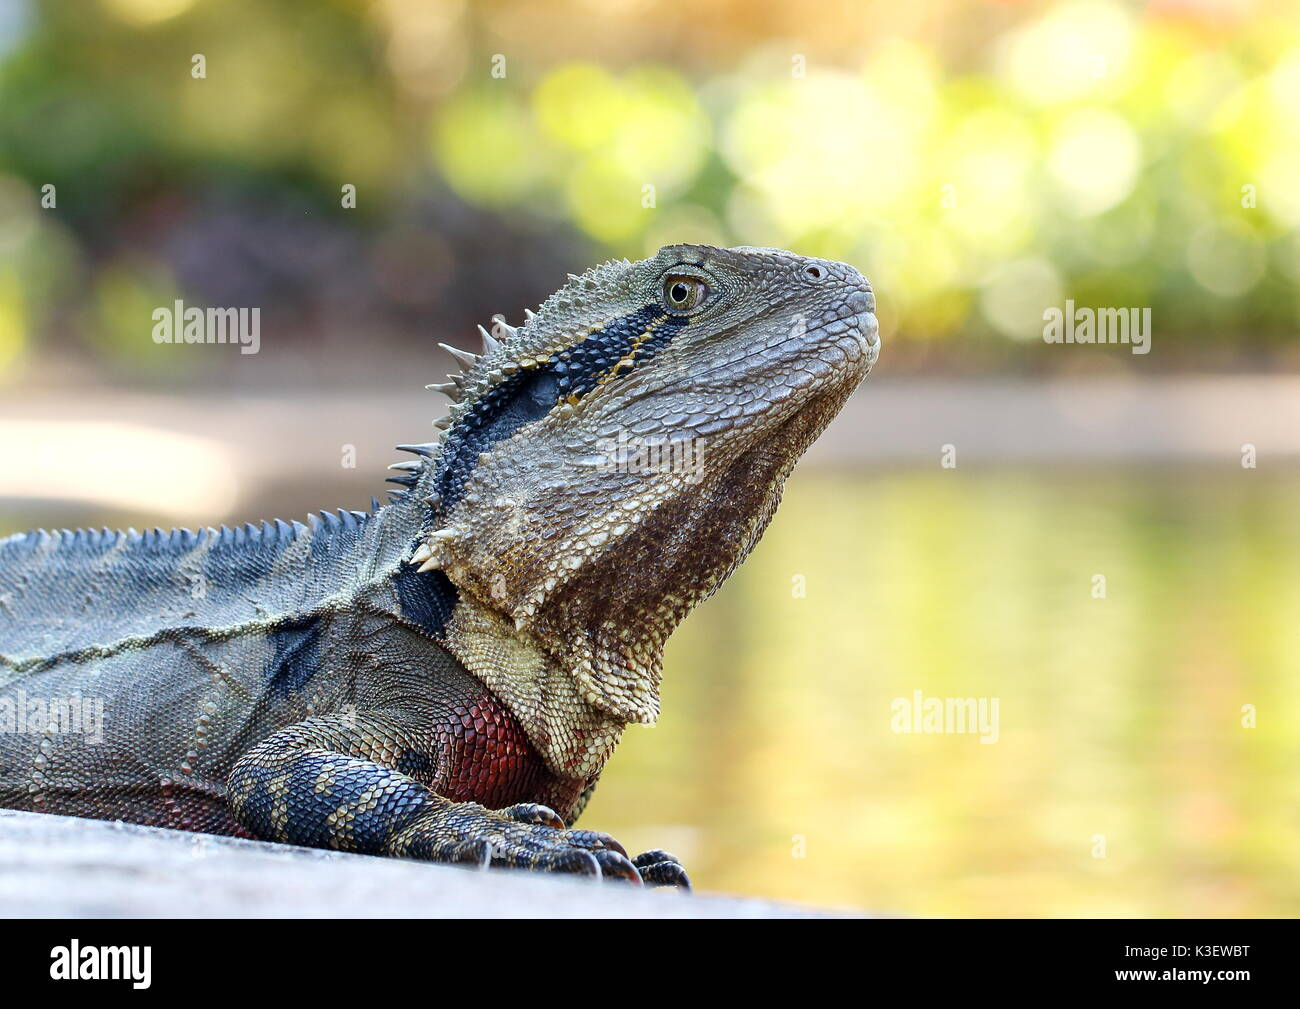 Water dragon in a botanical park in Australia sunning itself by a lake - Stock Image